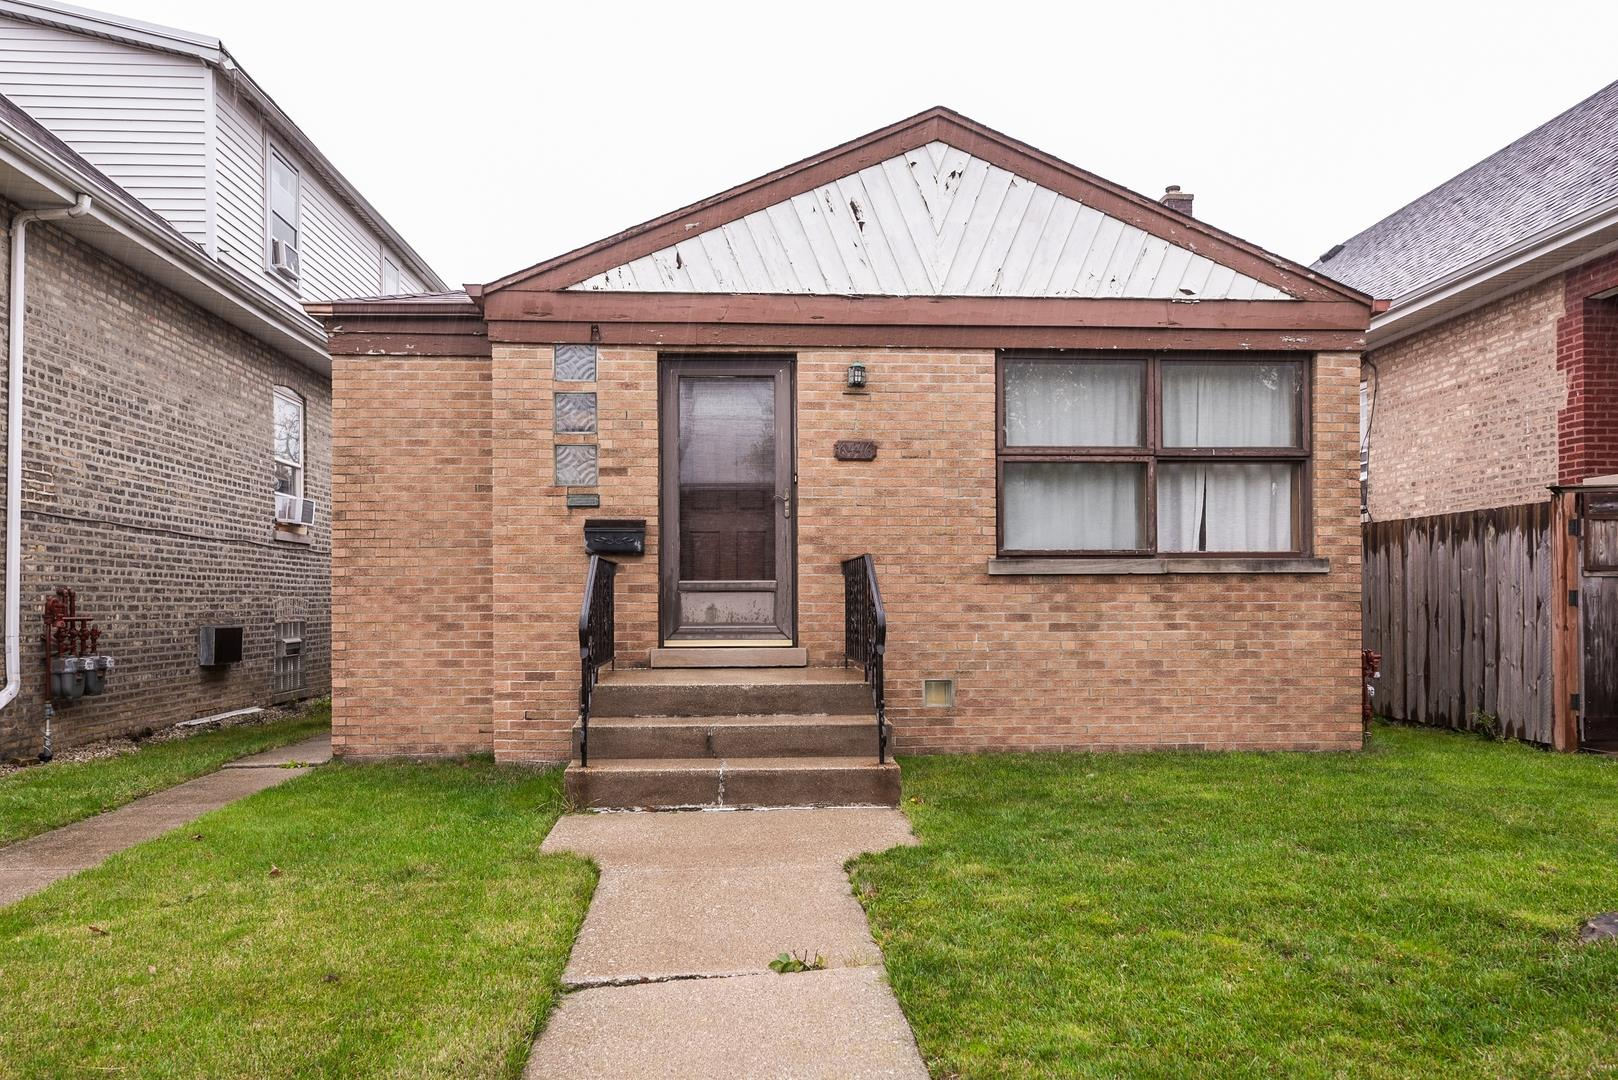 6446 N Harlem Avenue, Chicago, IL 60631 - #: 10924608